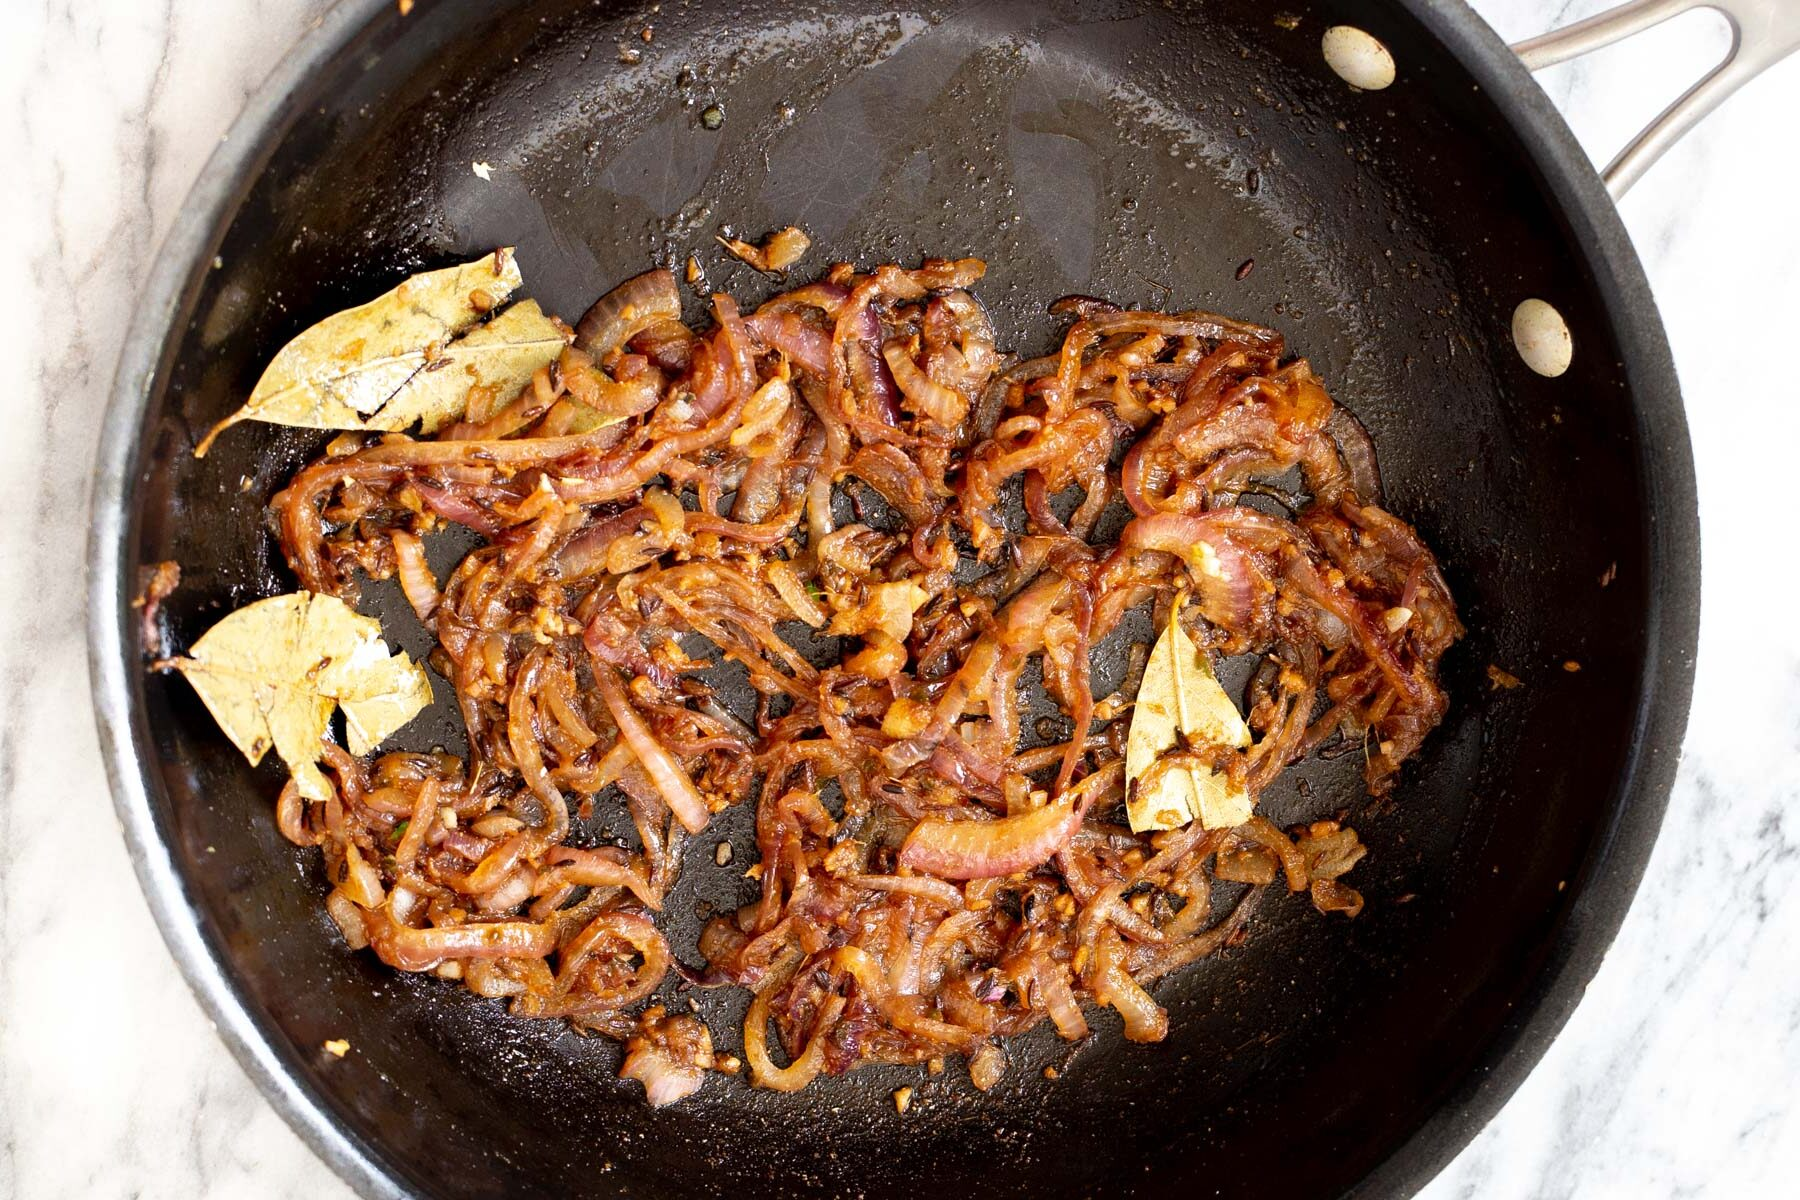 spices and onion being sauteed in a pan